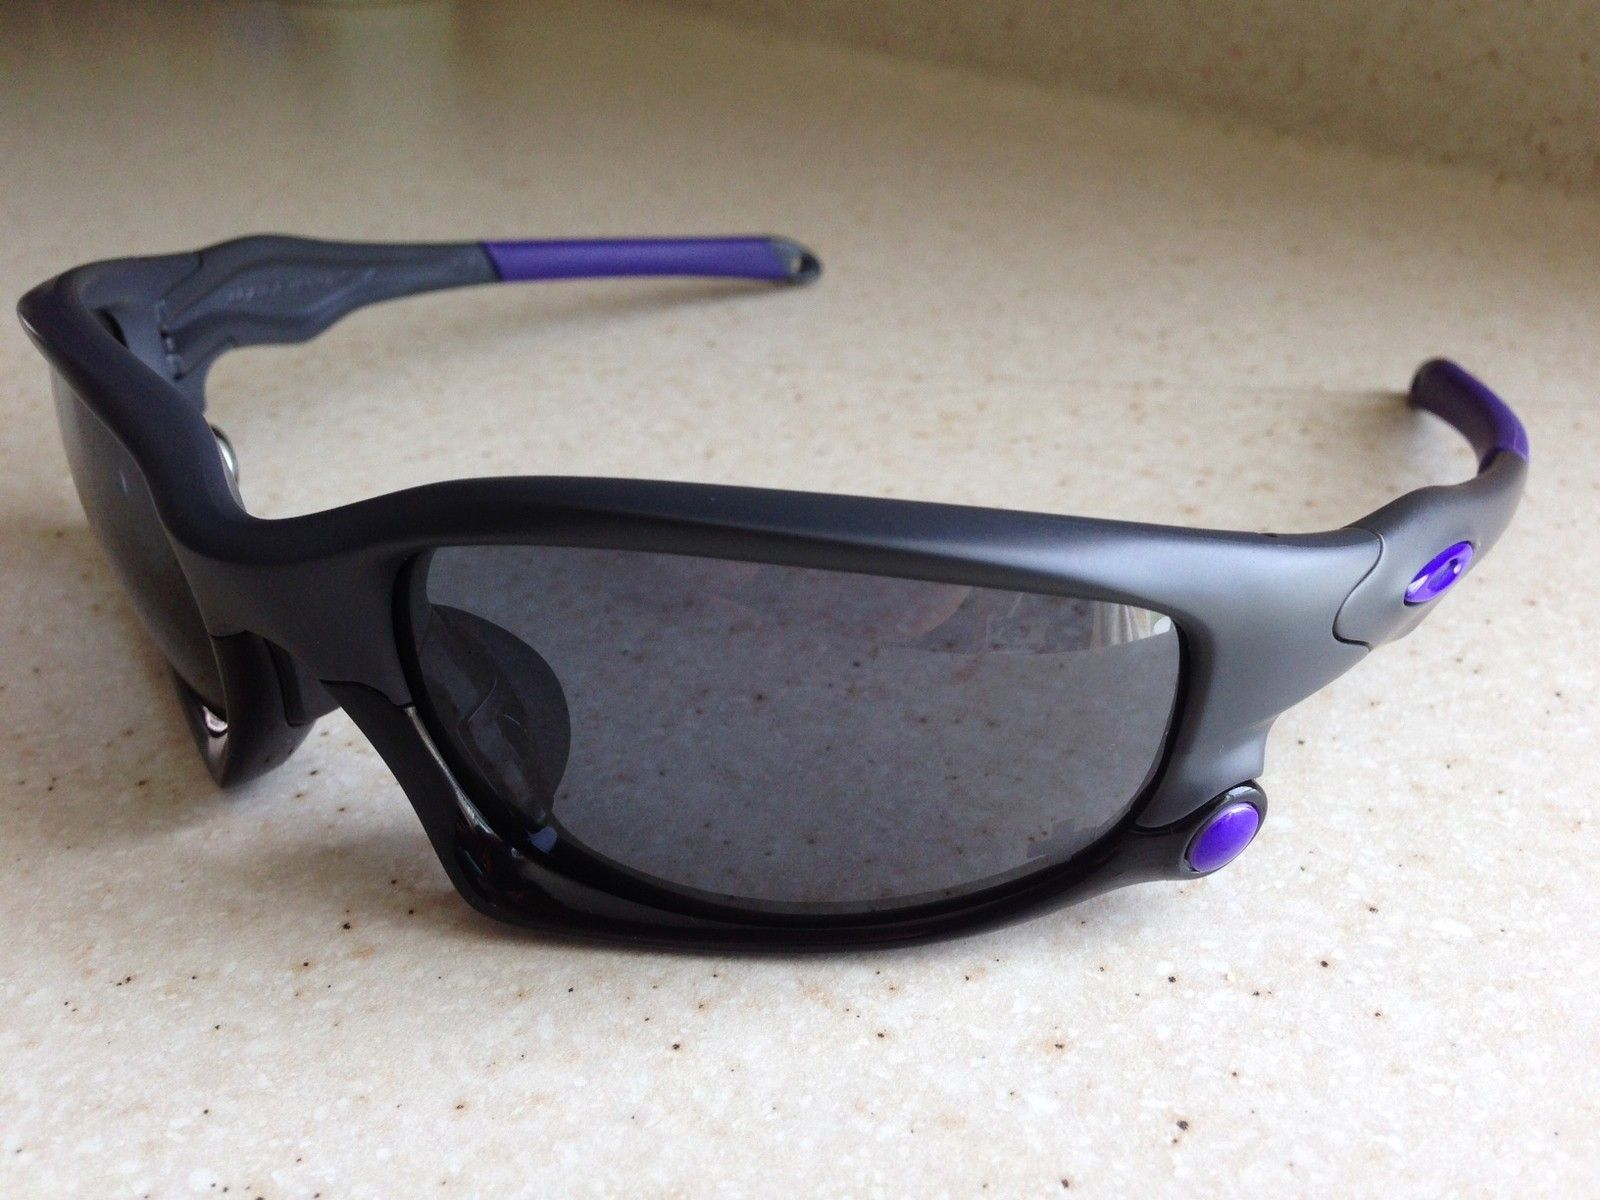 NEW OAKLEY INFINITE HERO SPLIT JACKET *REDUCED PRICE* - IMG_5659.JPG